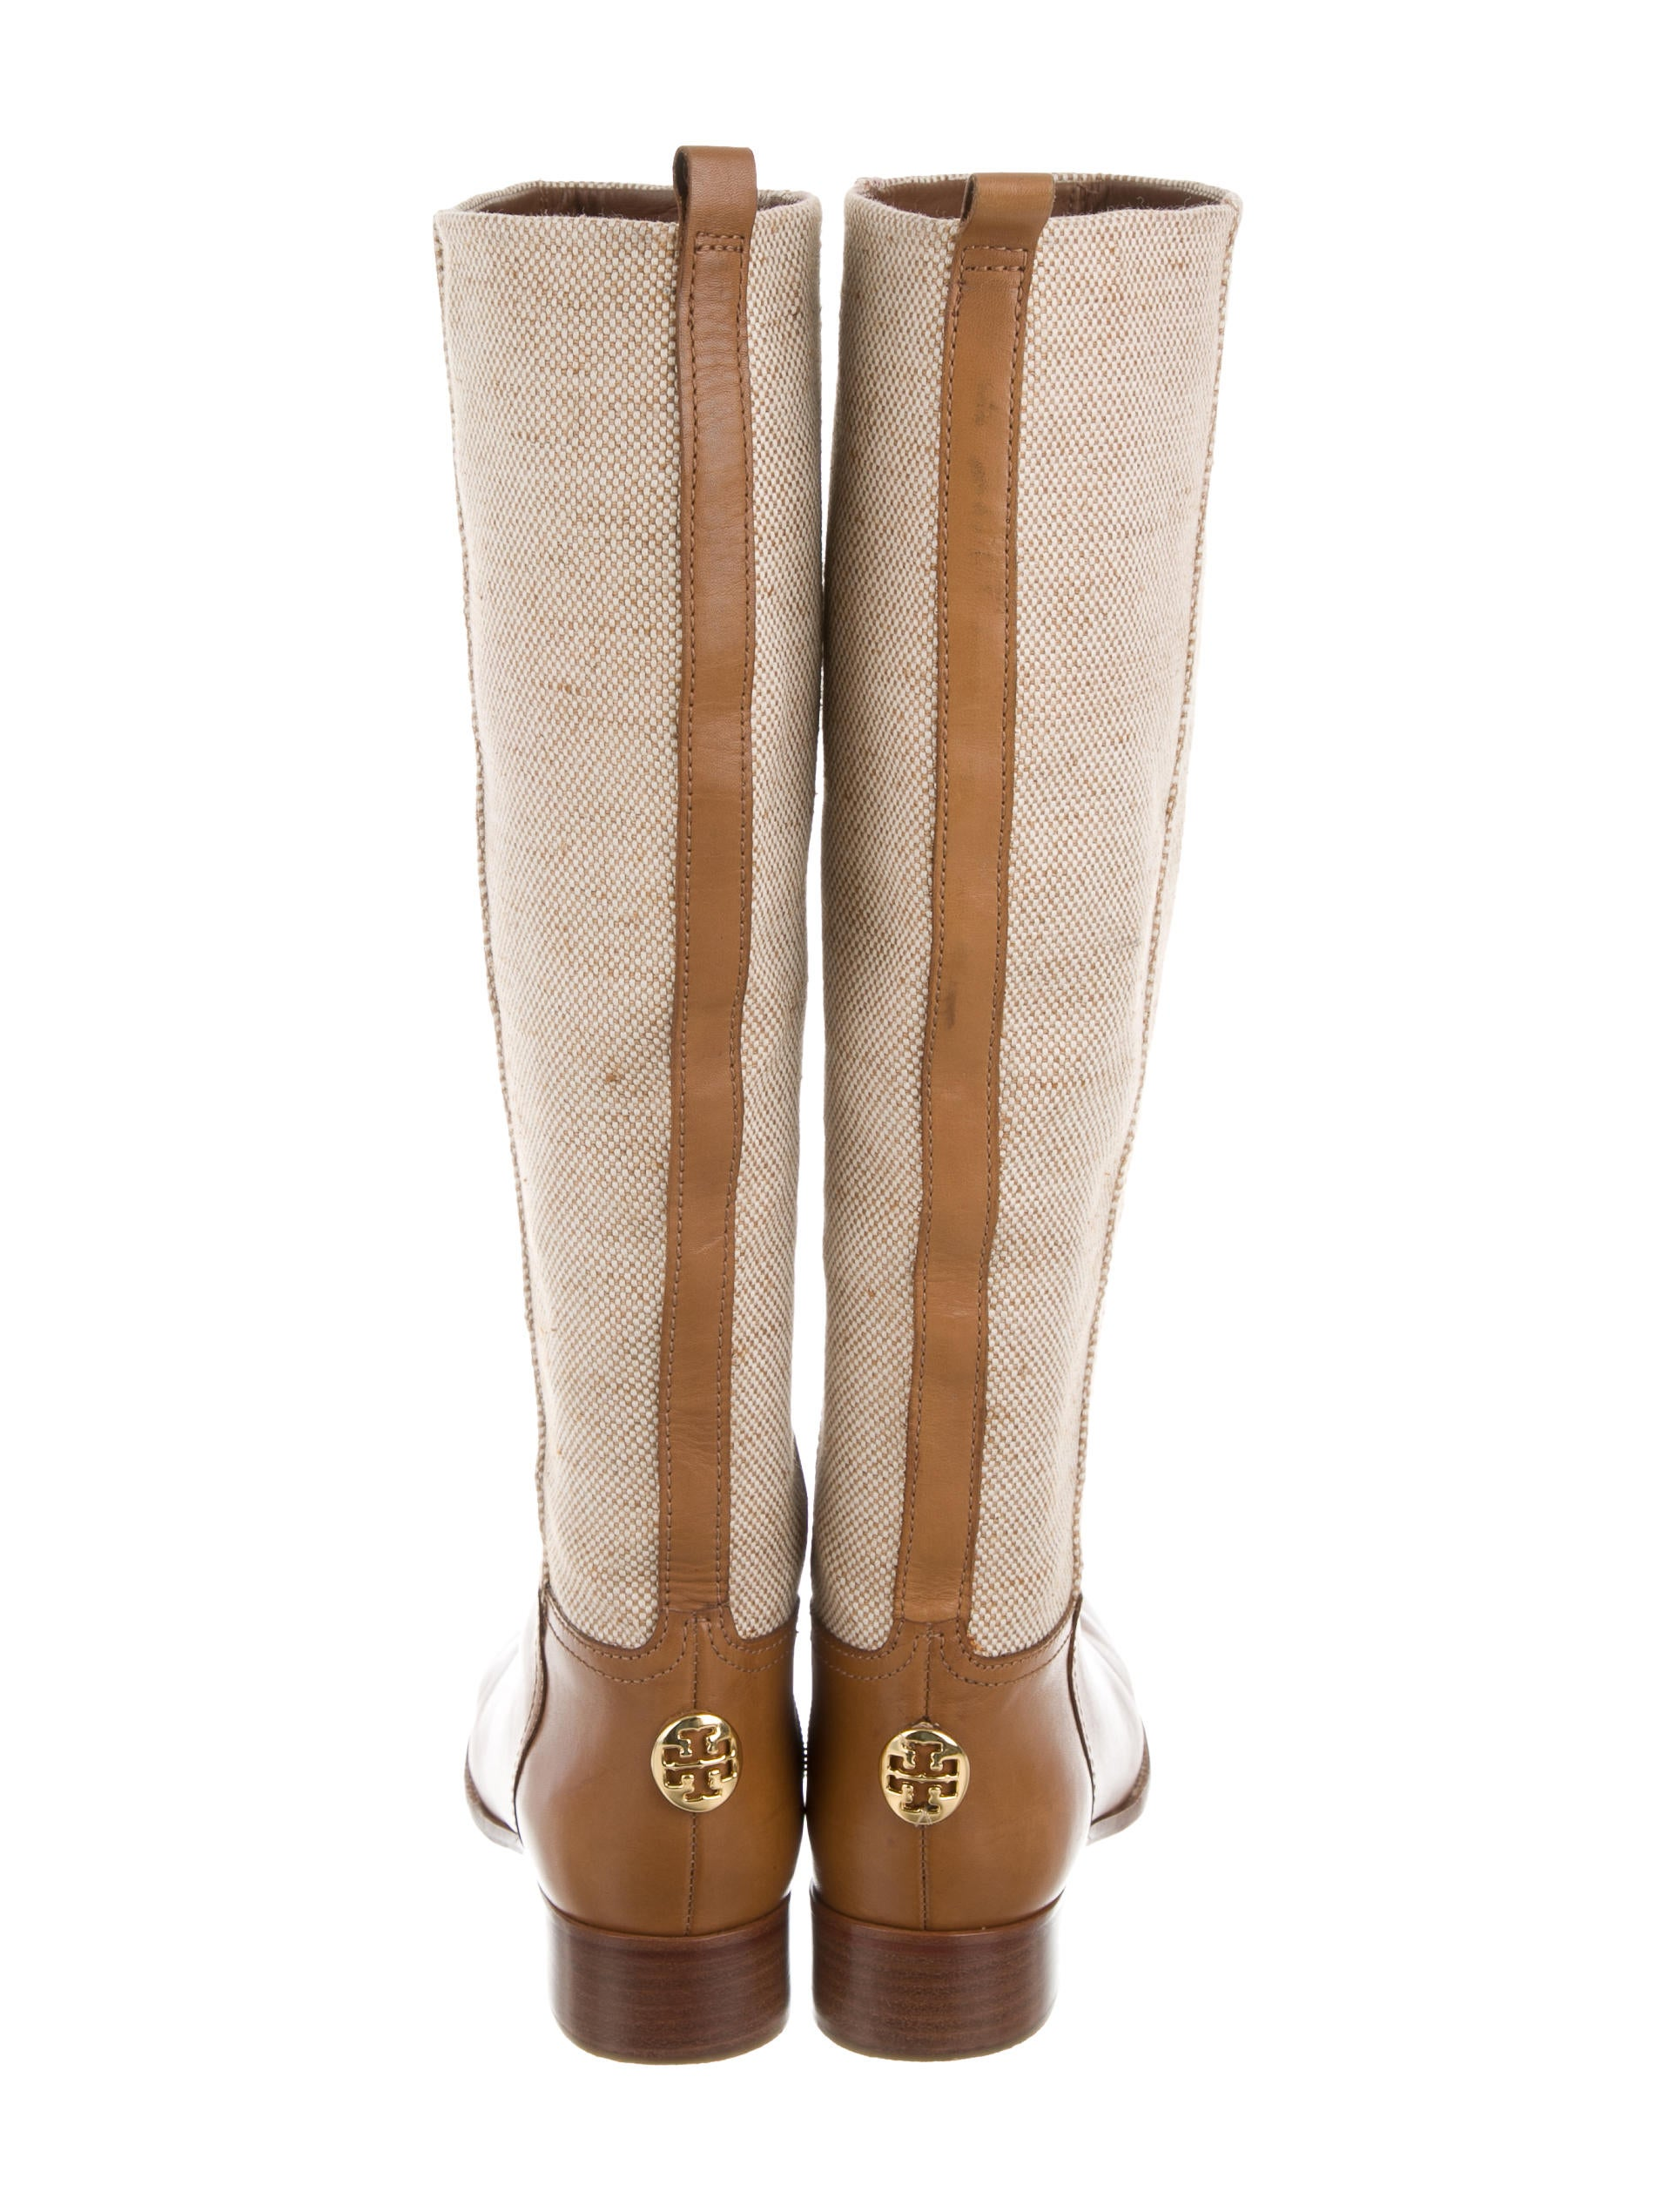 burch canvas knee high boots shoes wto88988 the